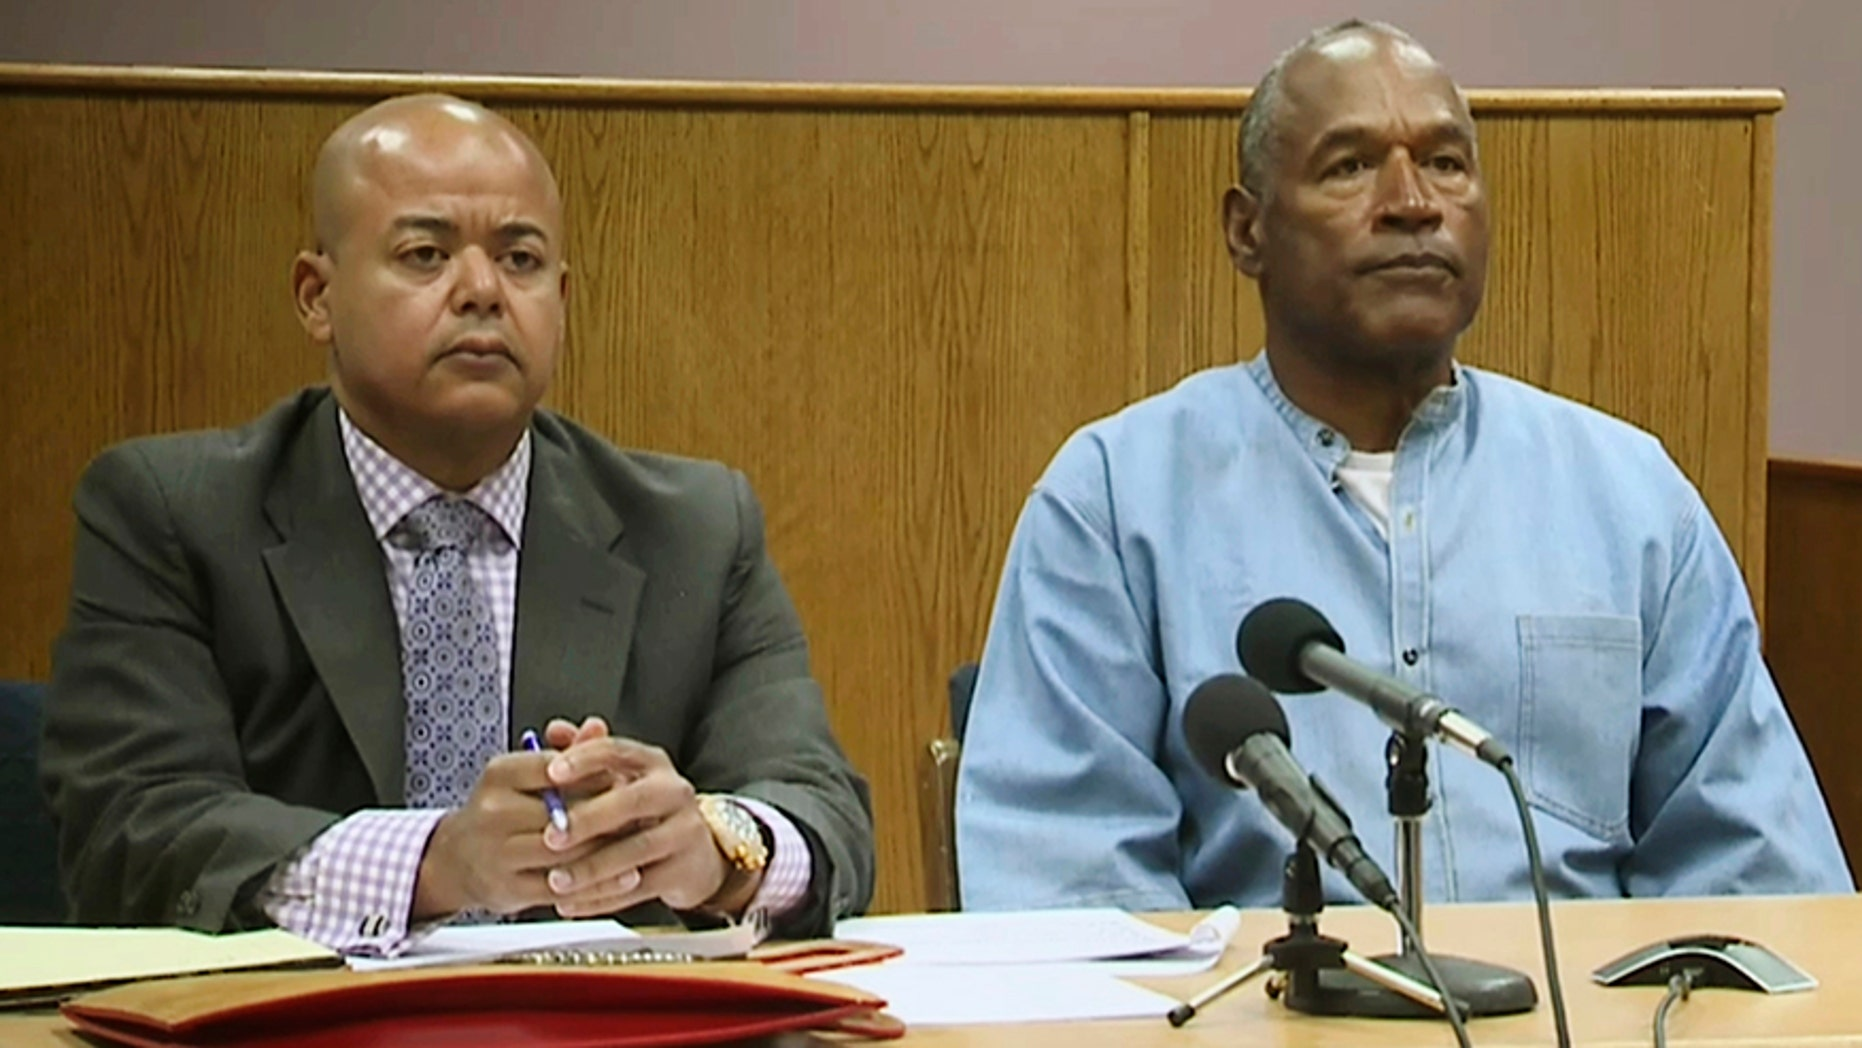 Former NFL football star O.J. Simpson appears with his attorney, Malcolm LaVergne, left, via video for his parole hearing at the Lovelock Correctional Center in Lovelock, Nev.